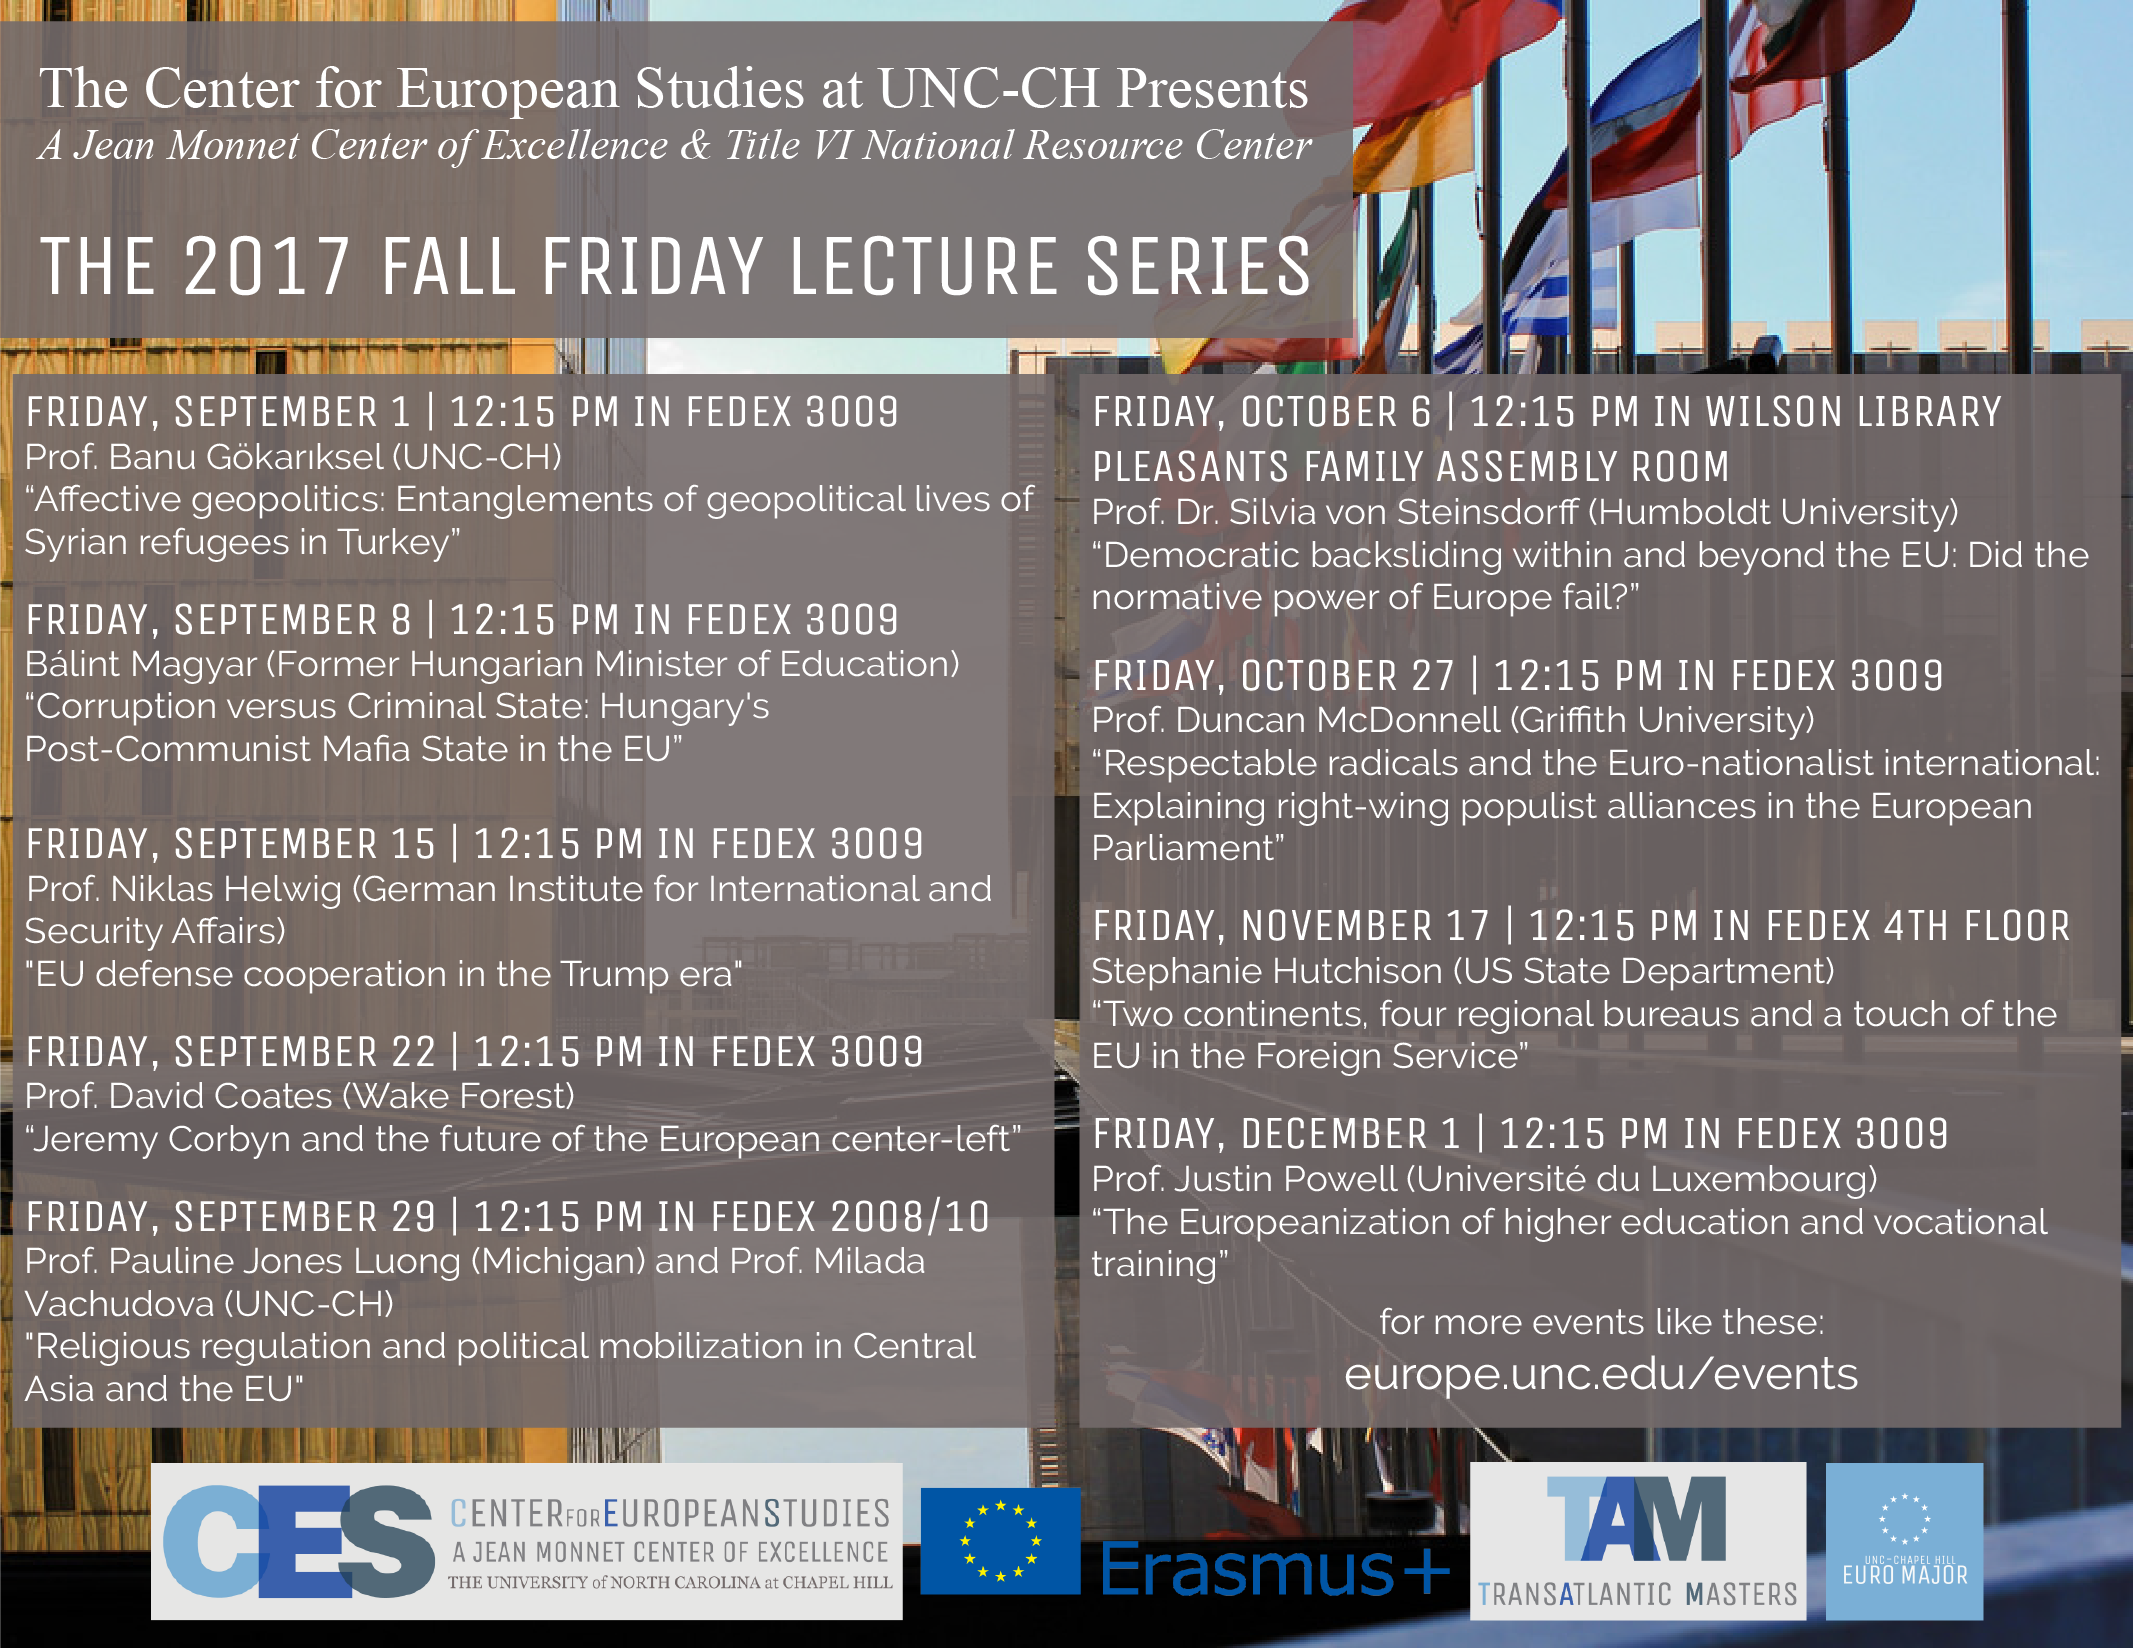 2017 Fall Lecture Series Poster.